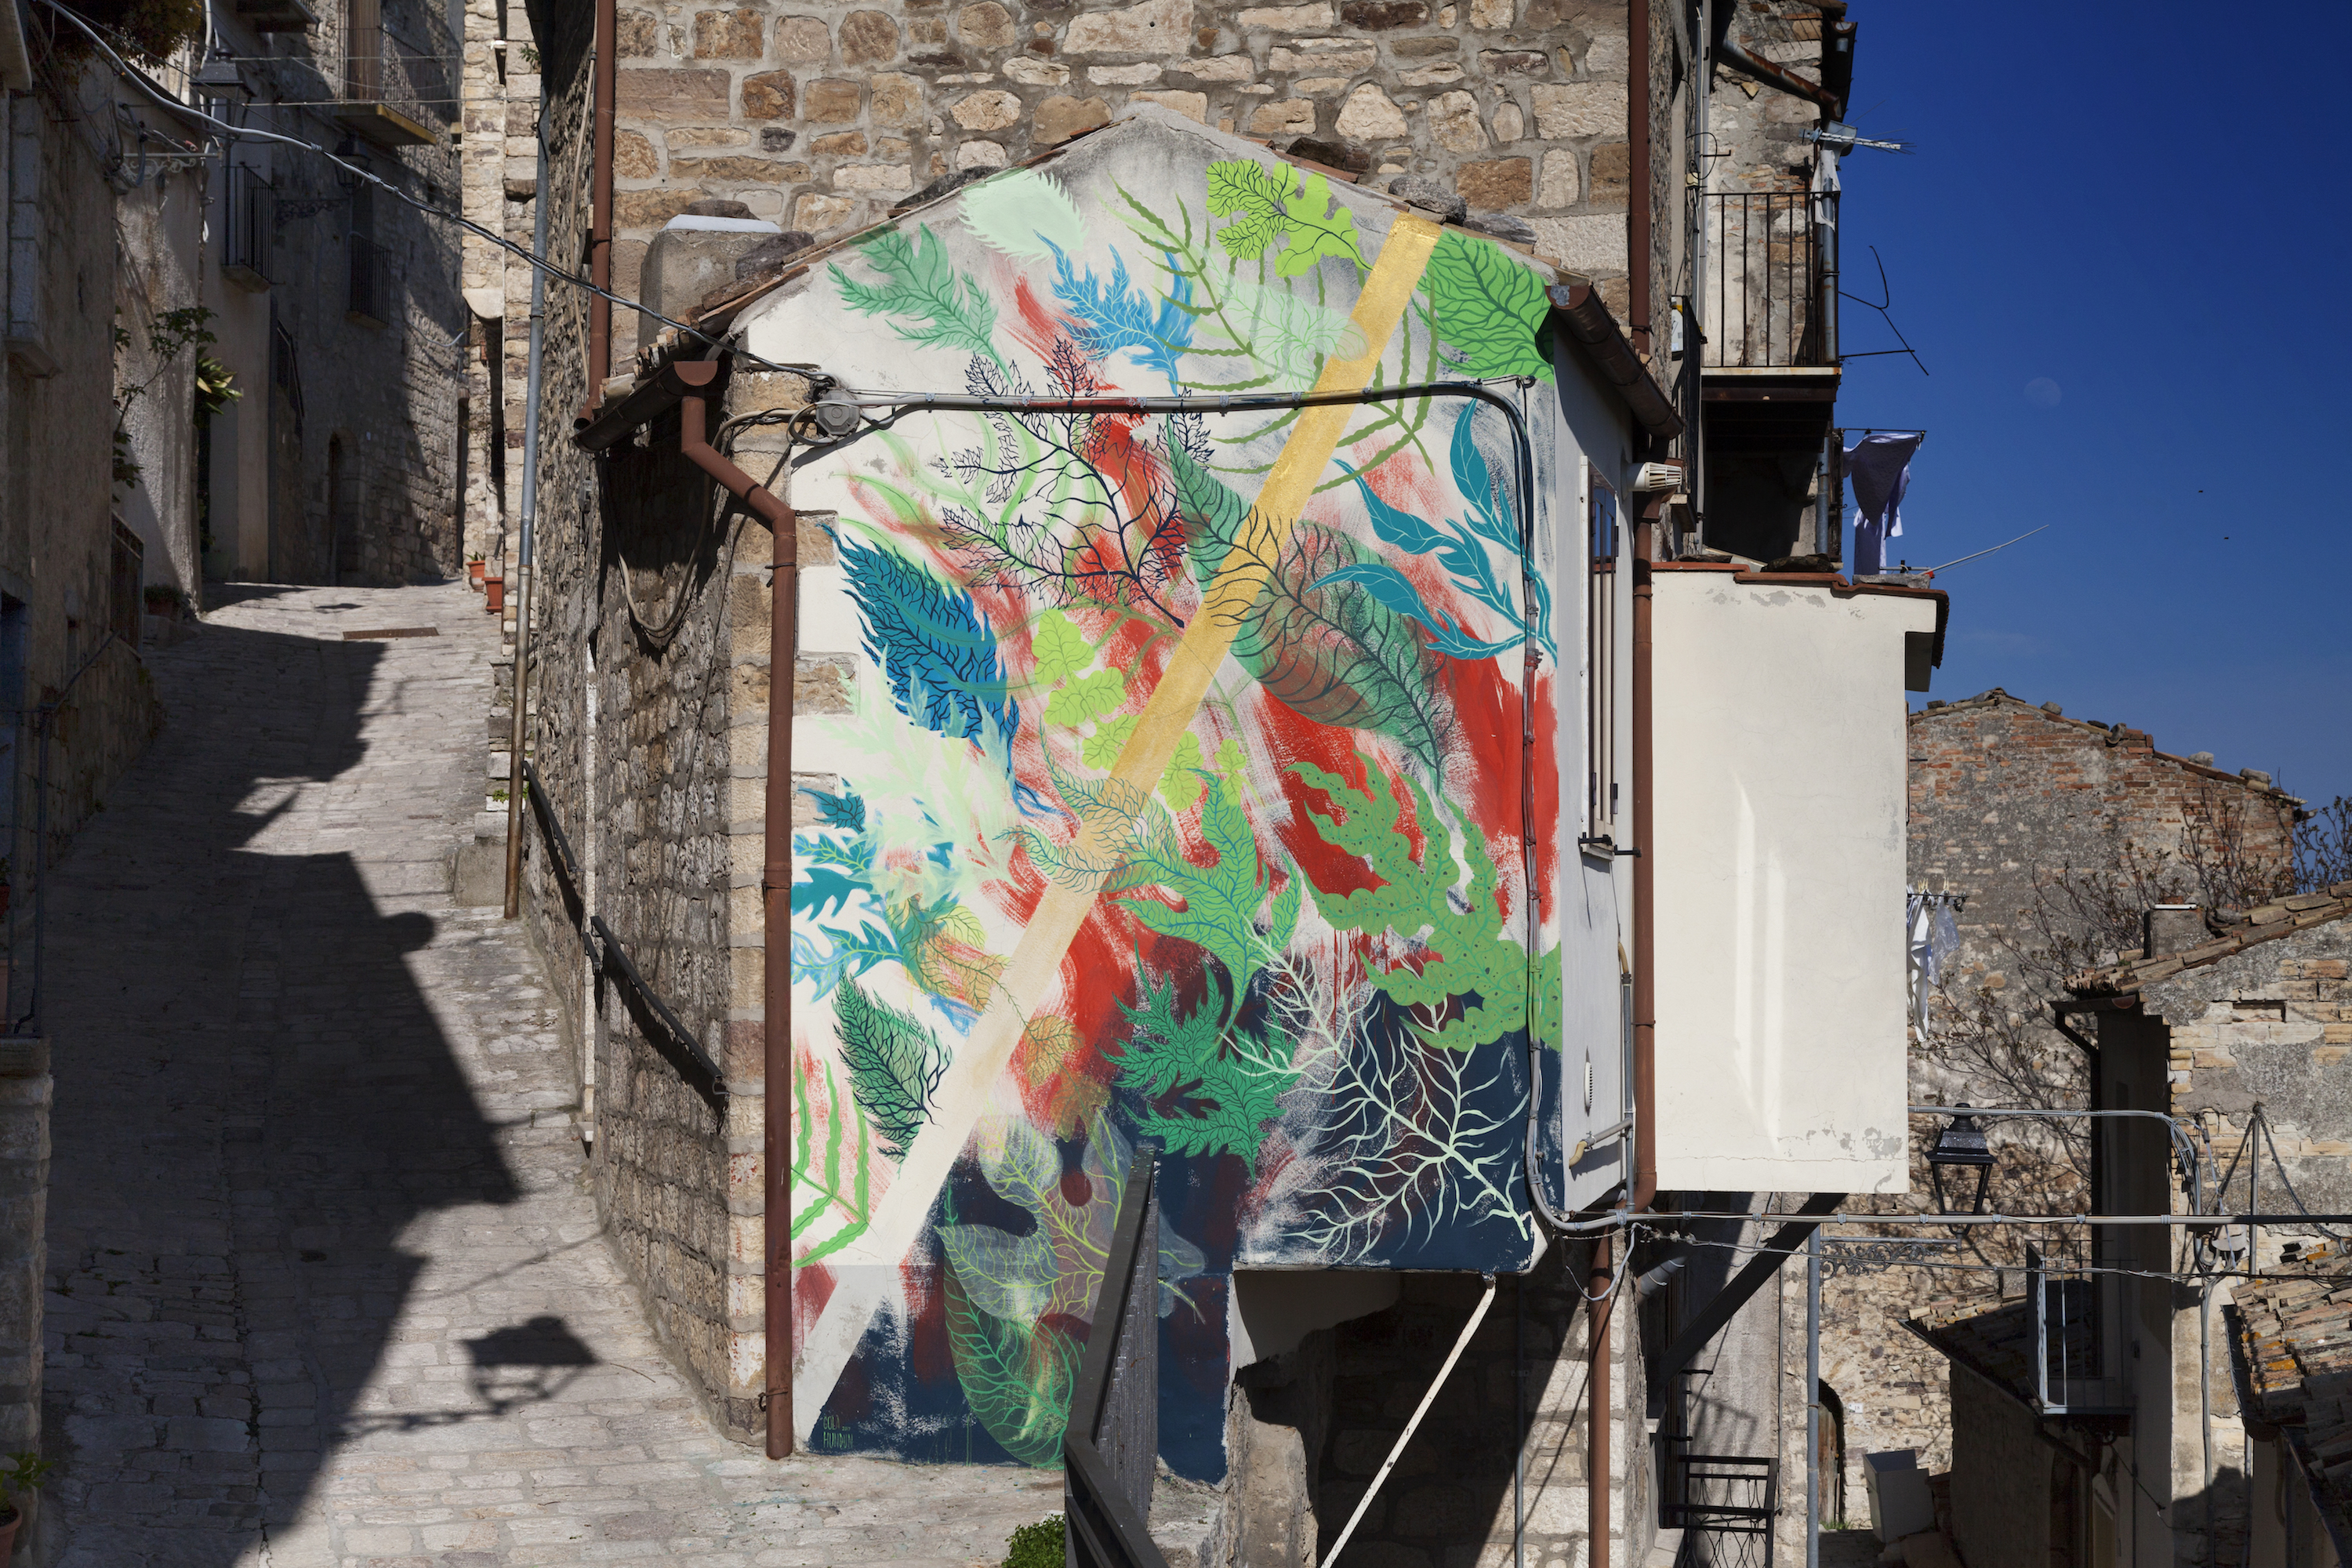 Murals in medieval town of civitacampomarano italy by gola hundun recently gola hundun visited civitacampomarano almost abandoned town in the heart of molise region in italy to paint countless murals all over it amipublicfo Image collections